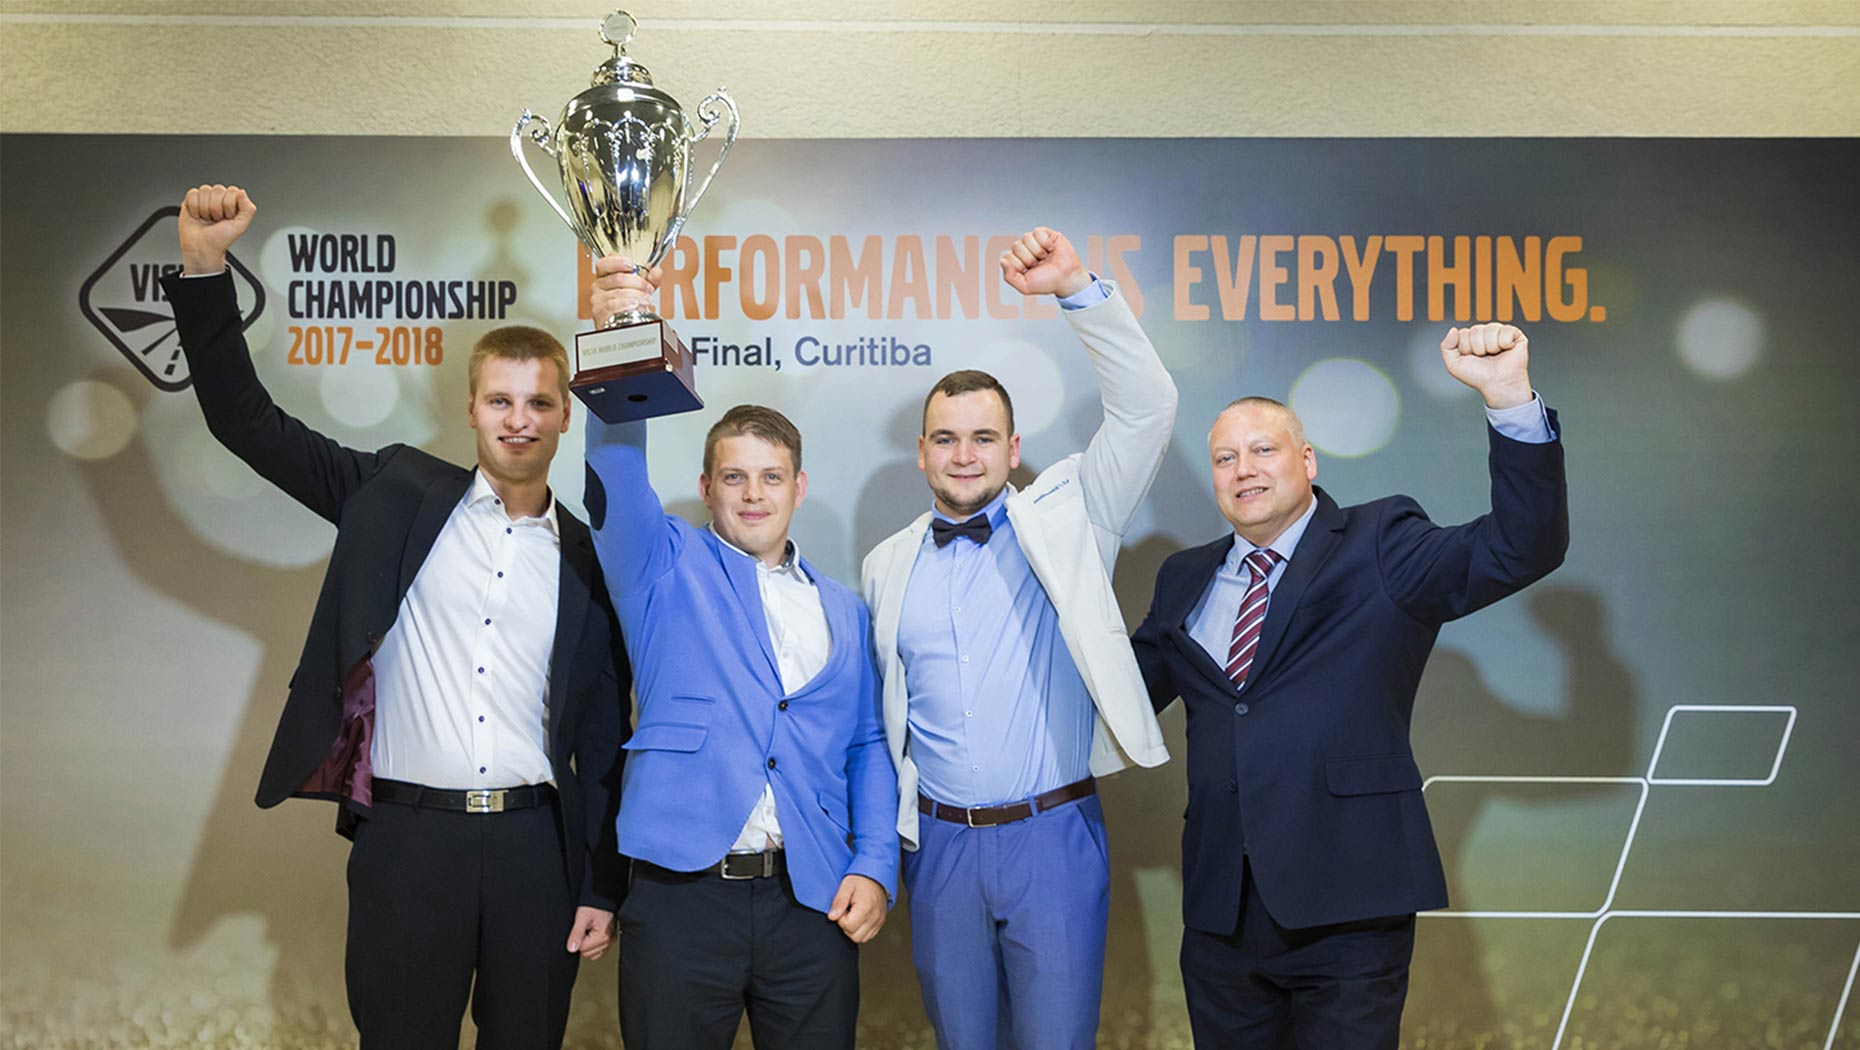 'Viies ratas' from Estonia win vista 2018